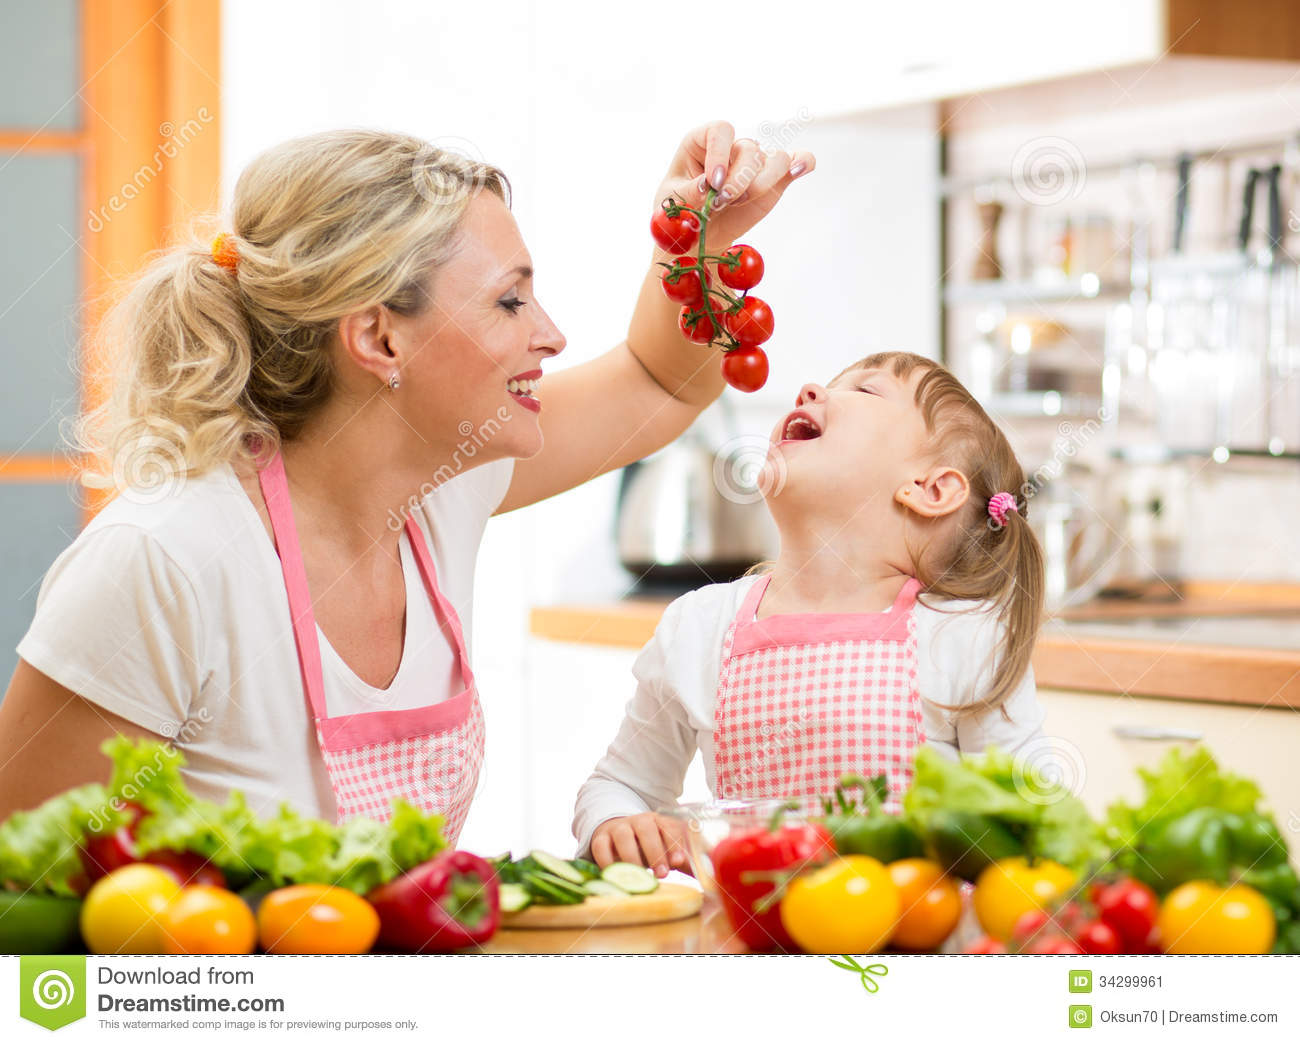 Mother Preparing Dinner And Feeding Kid Tomatoes In Kitchen Stock